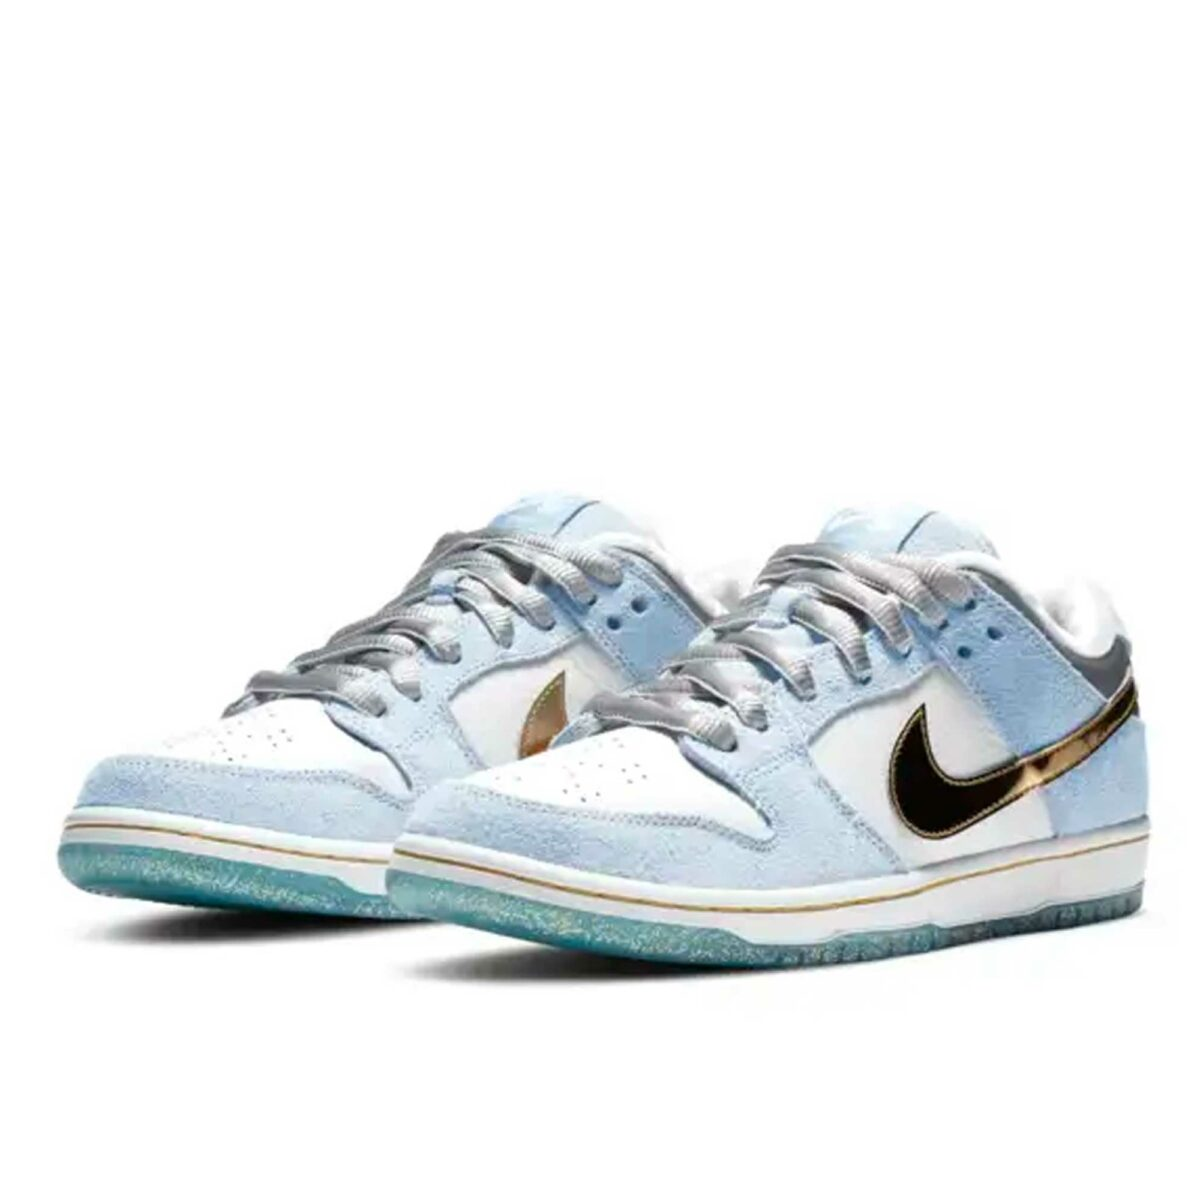 nike sb dunk low x Sean Cliver holiday special dc9936_100 купить